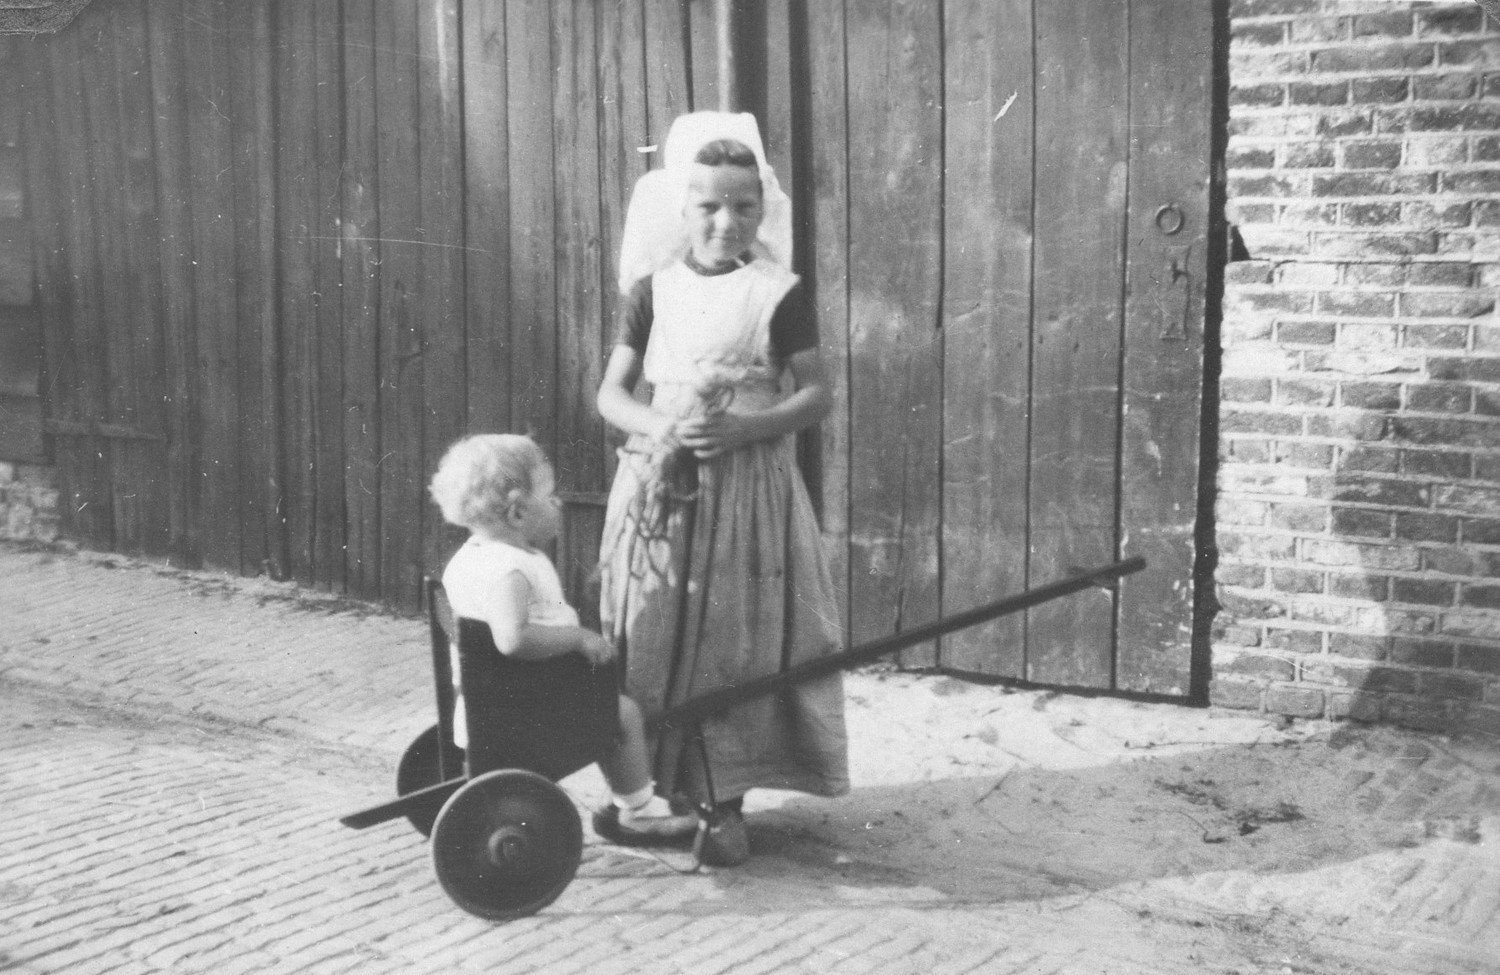 Girl with child from Walcheren in Zeeland, in the southwestern part of the Netherlands, in local costume. Photograph was taken in 1929.